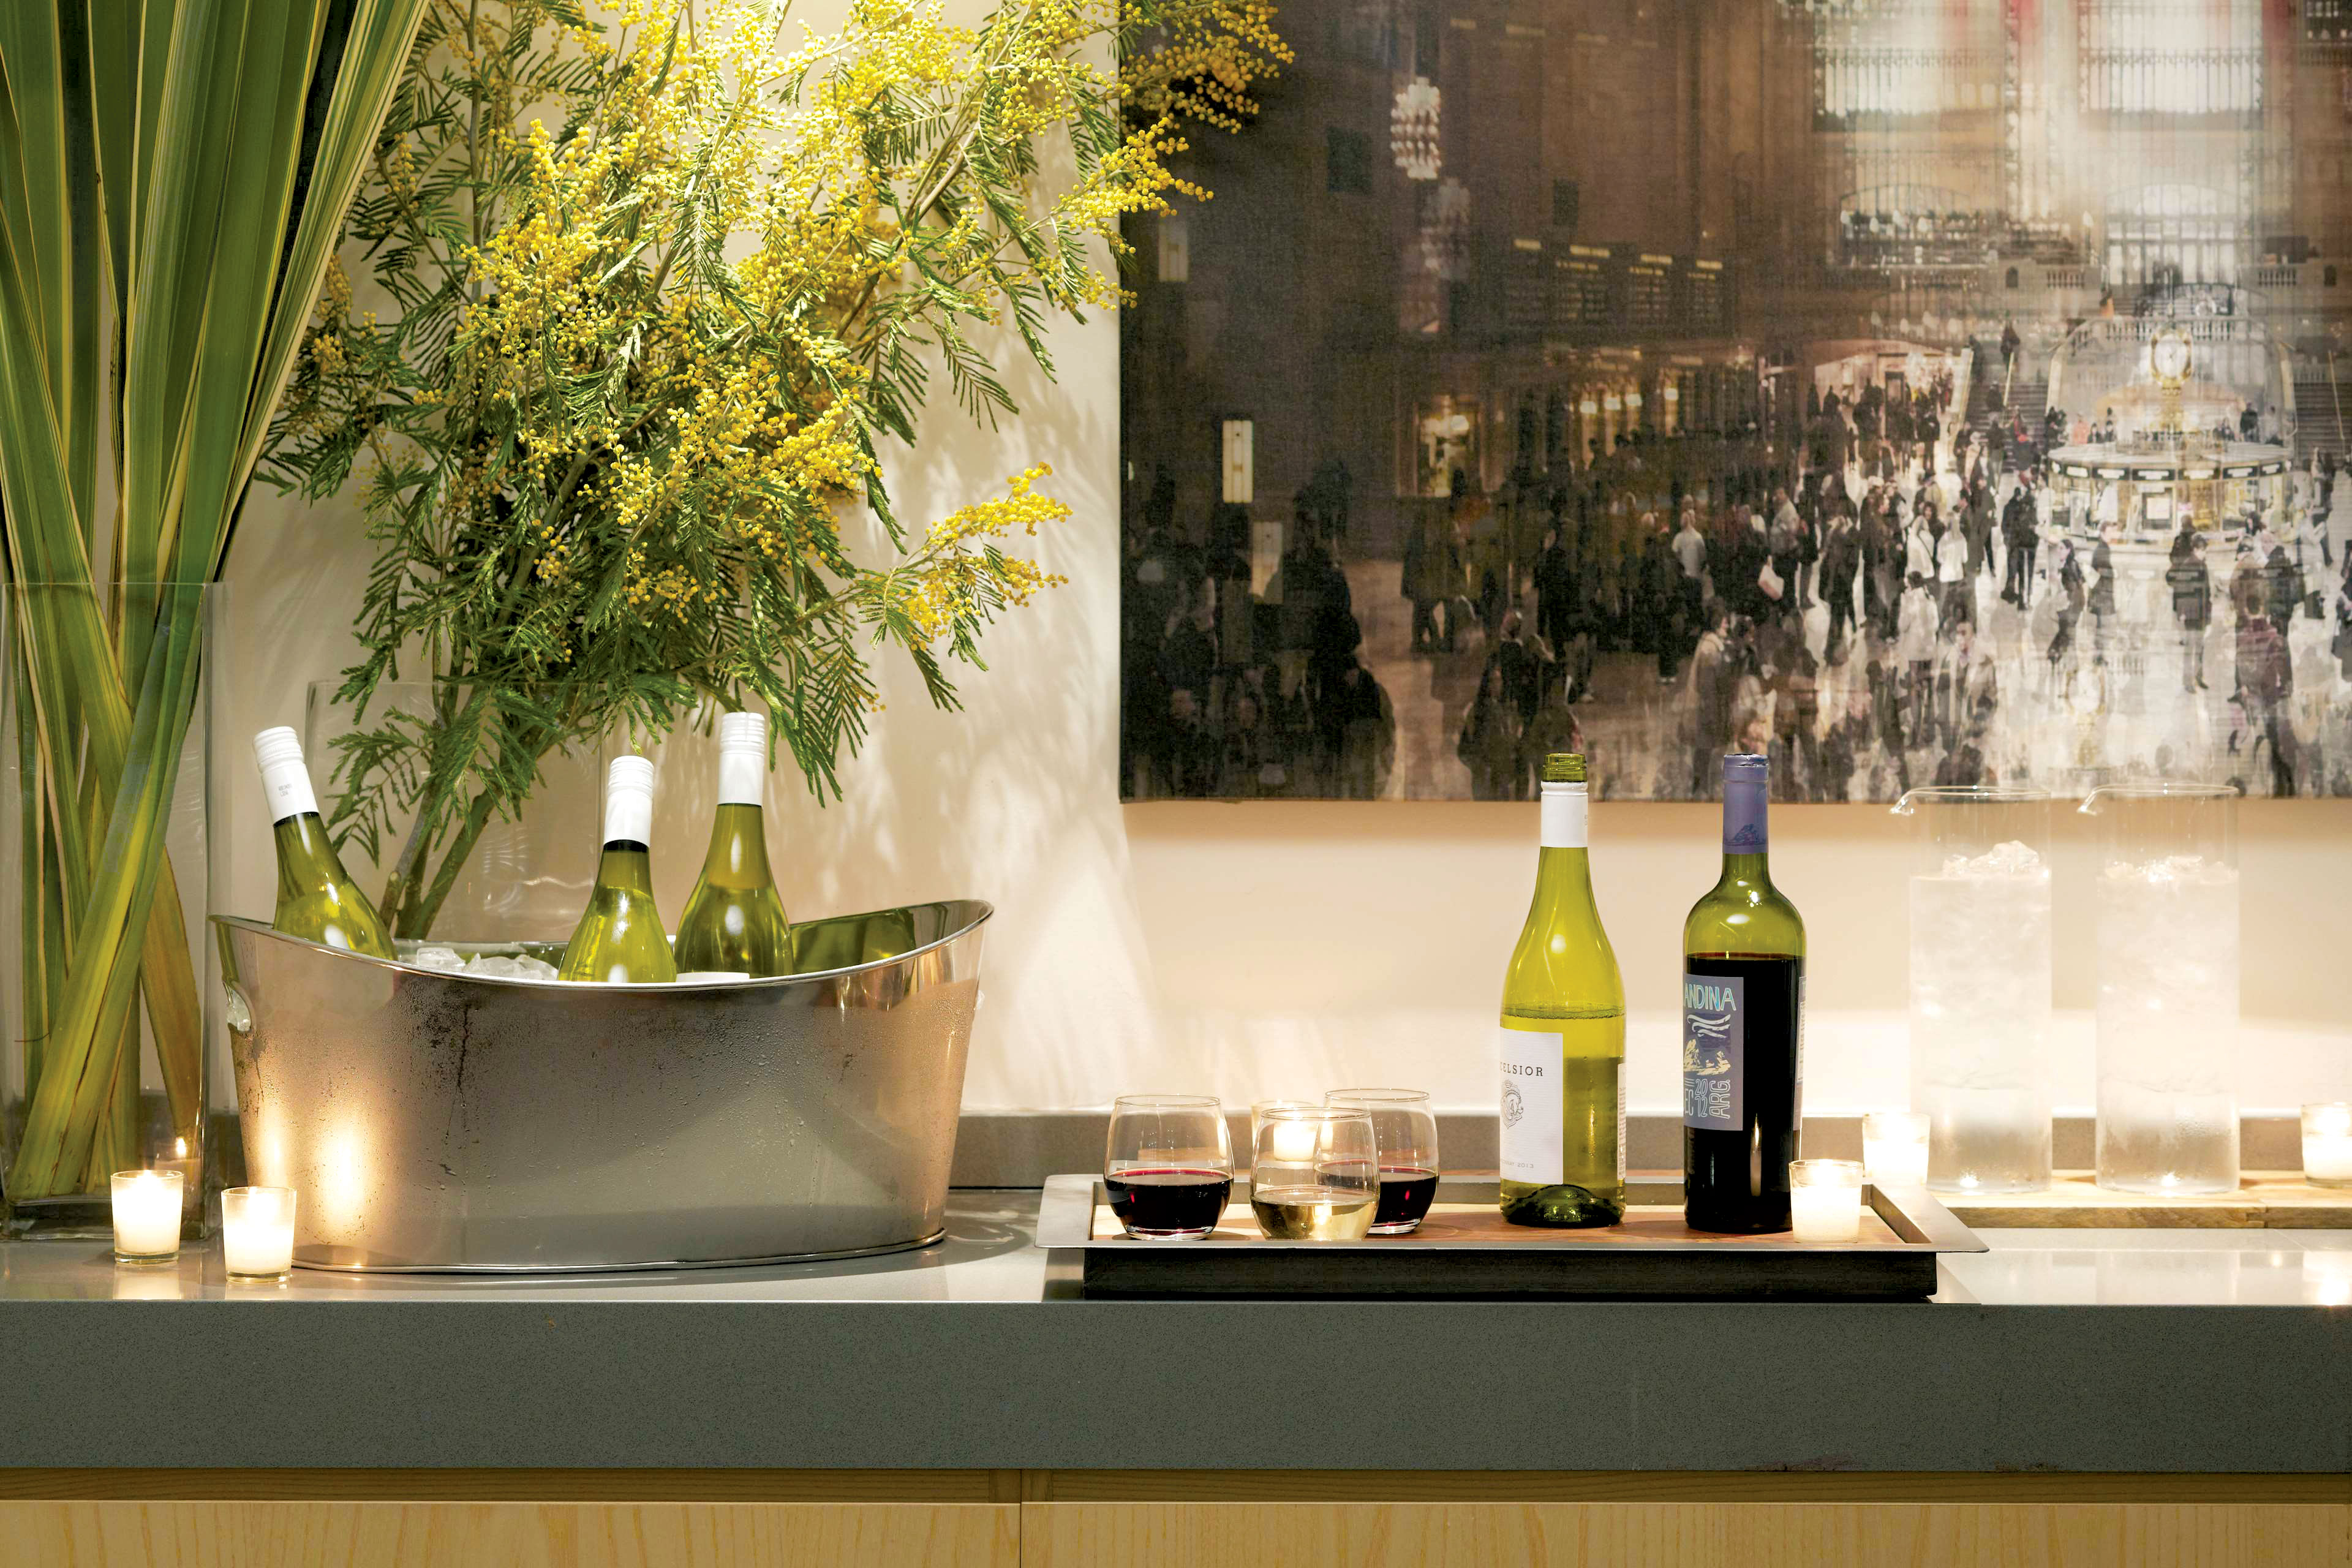 Wine Glasses And Wine Bottles On A Counter Top In The Den At Fifty Hotel & Suites